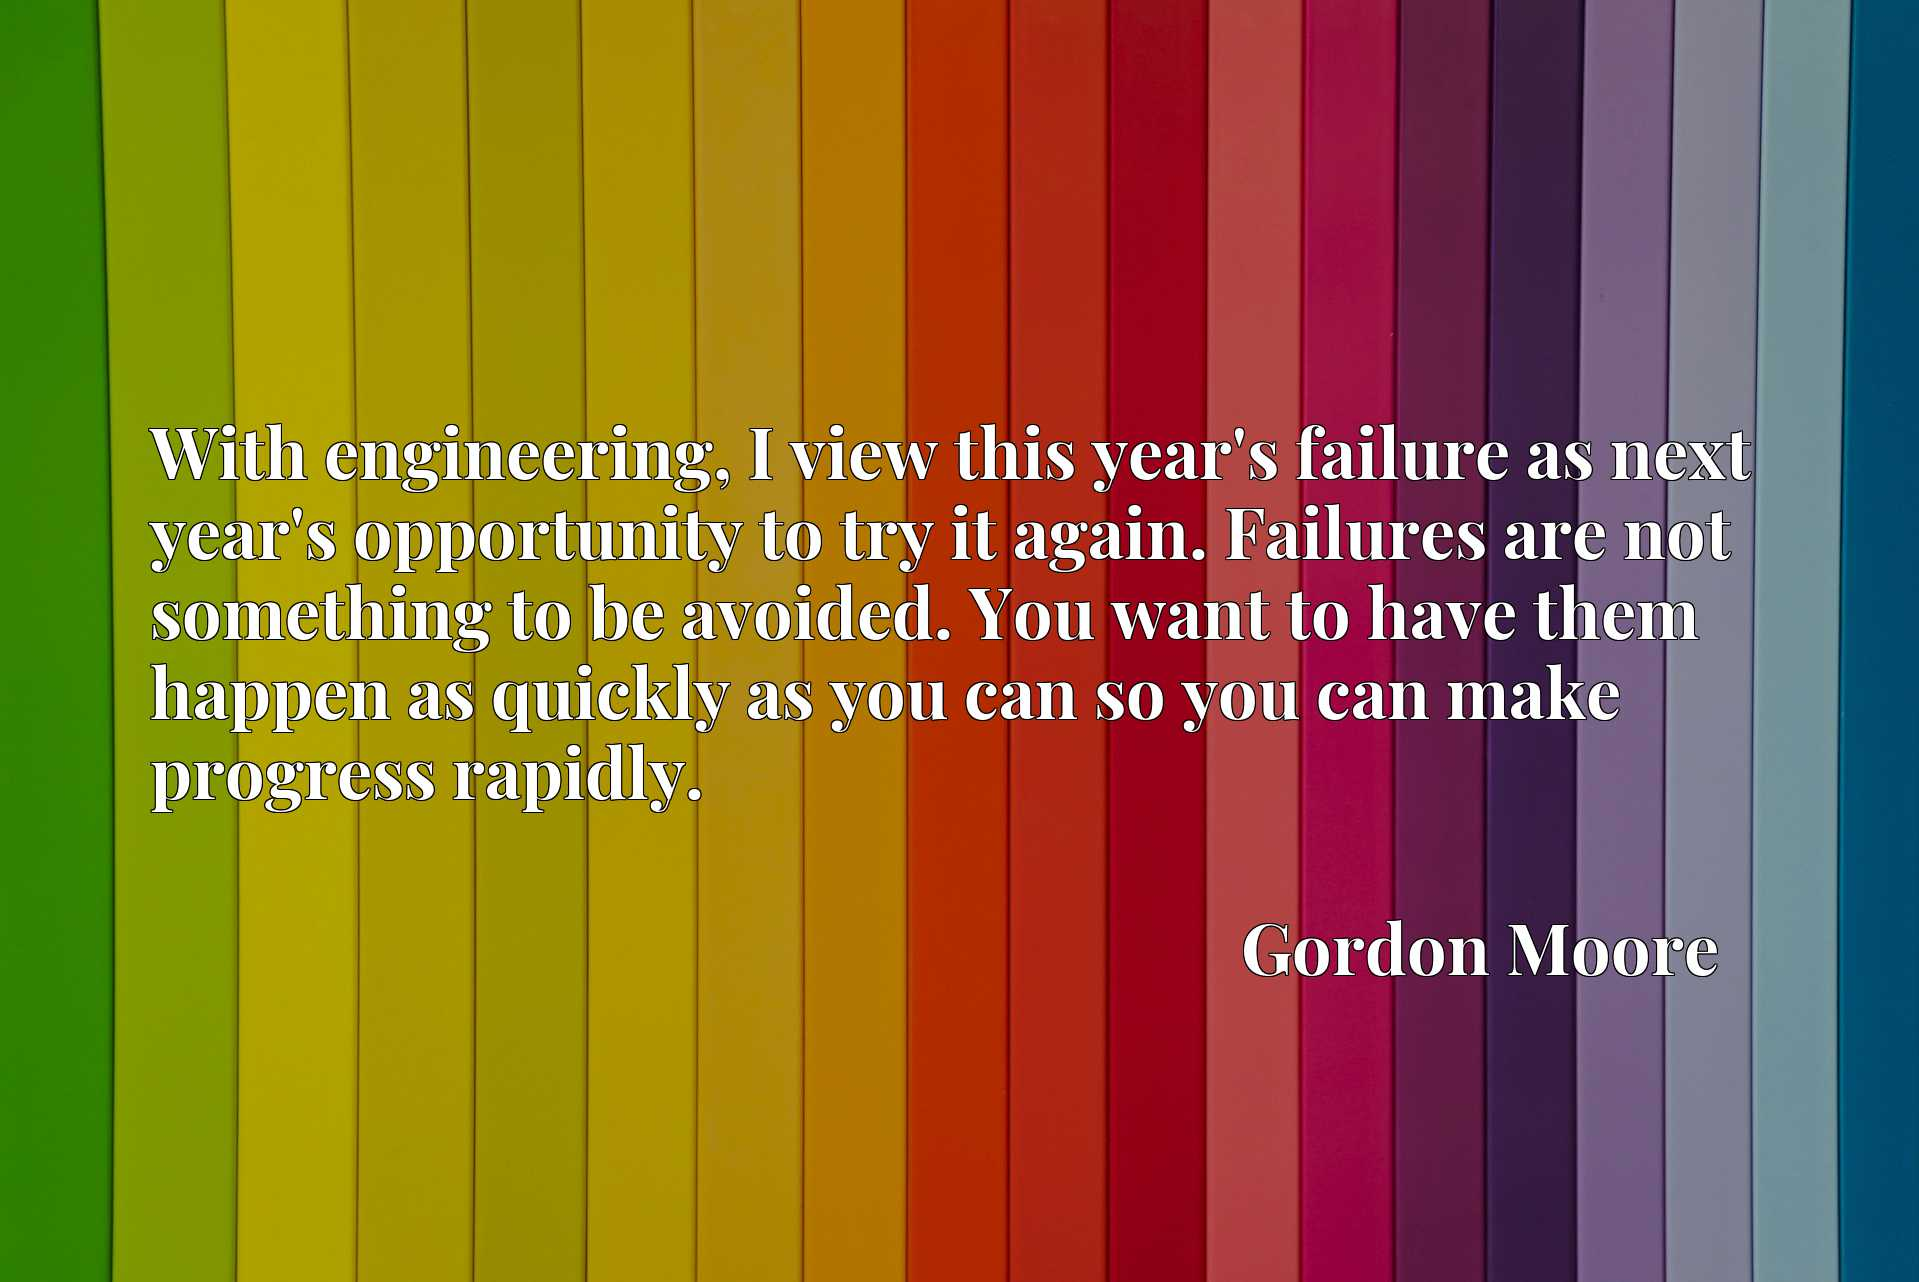 With engineering, I view this year's failure as next year's opportunity to try it again. Failures are not something to be avoided. You want to have them happen as quickly as you can so you can make progress rapidly.